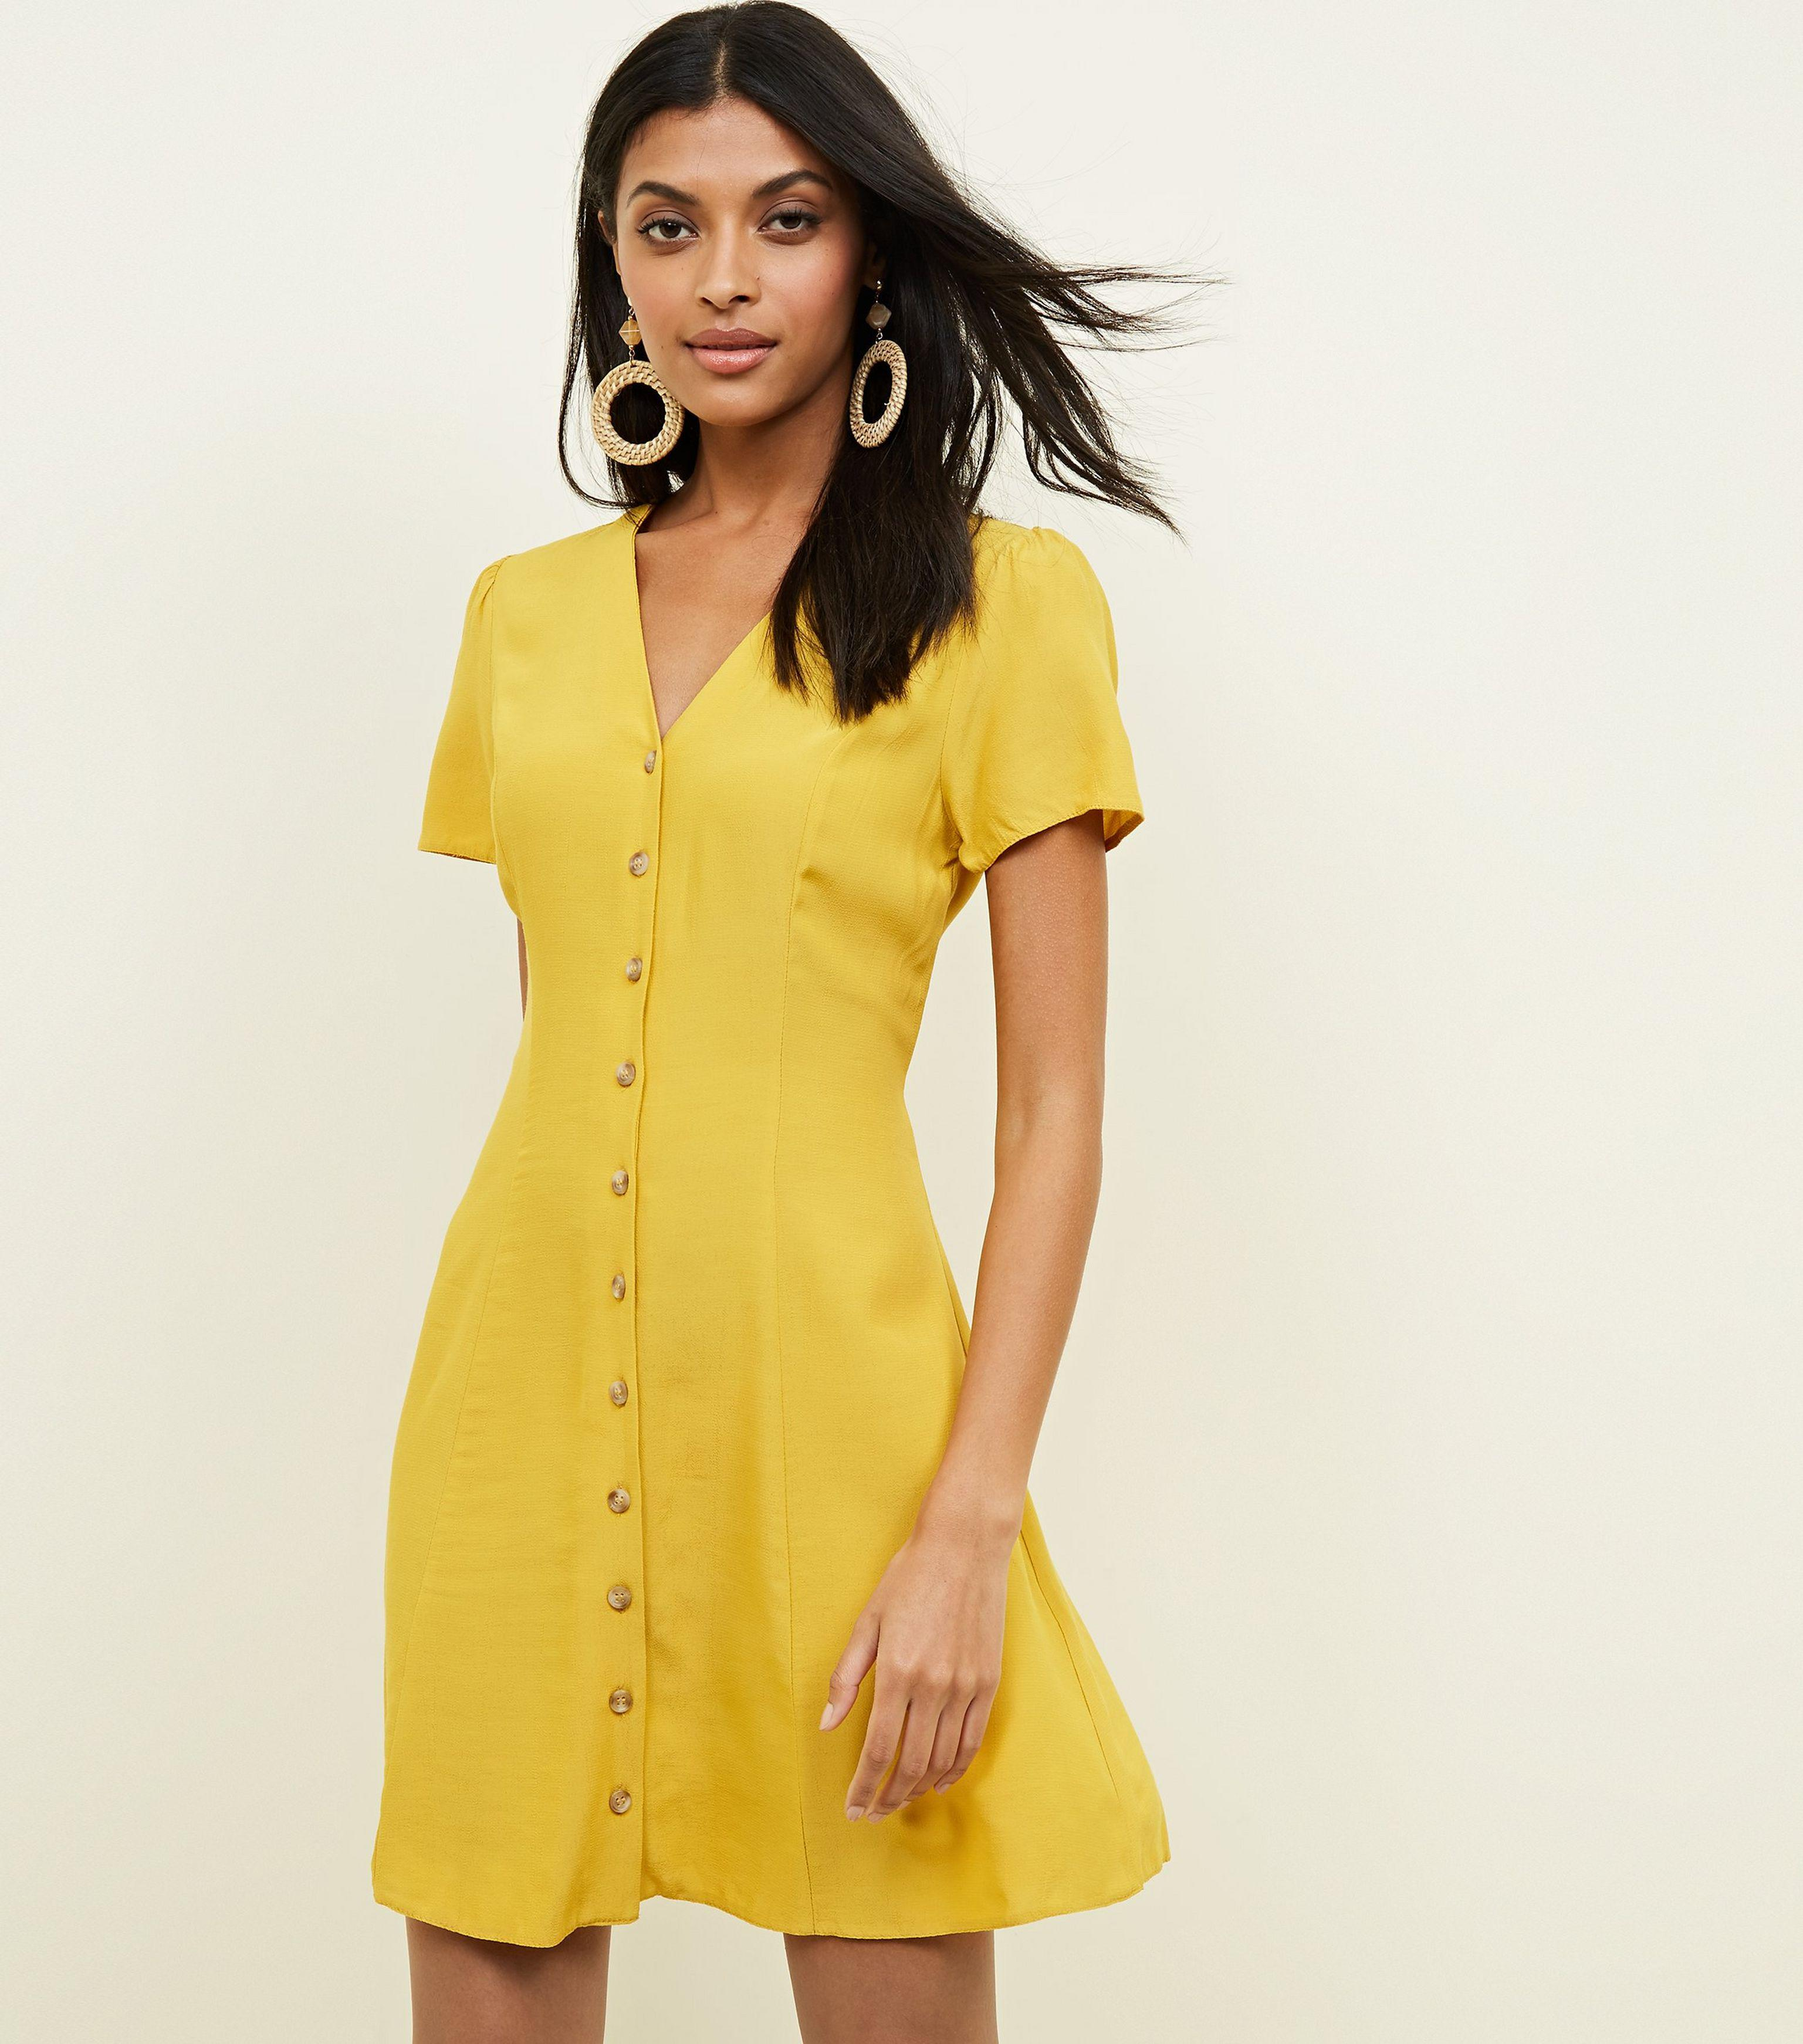 New Look Synthetic Mustard V Neck Button Front Tea Dress